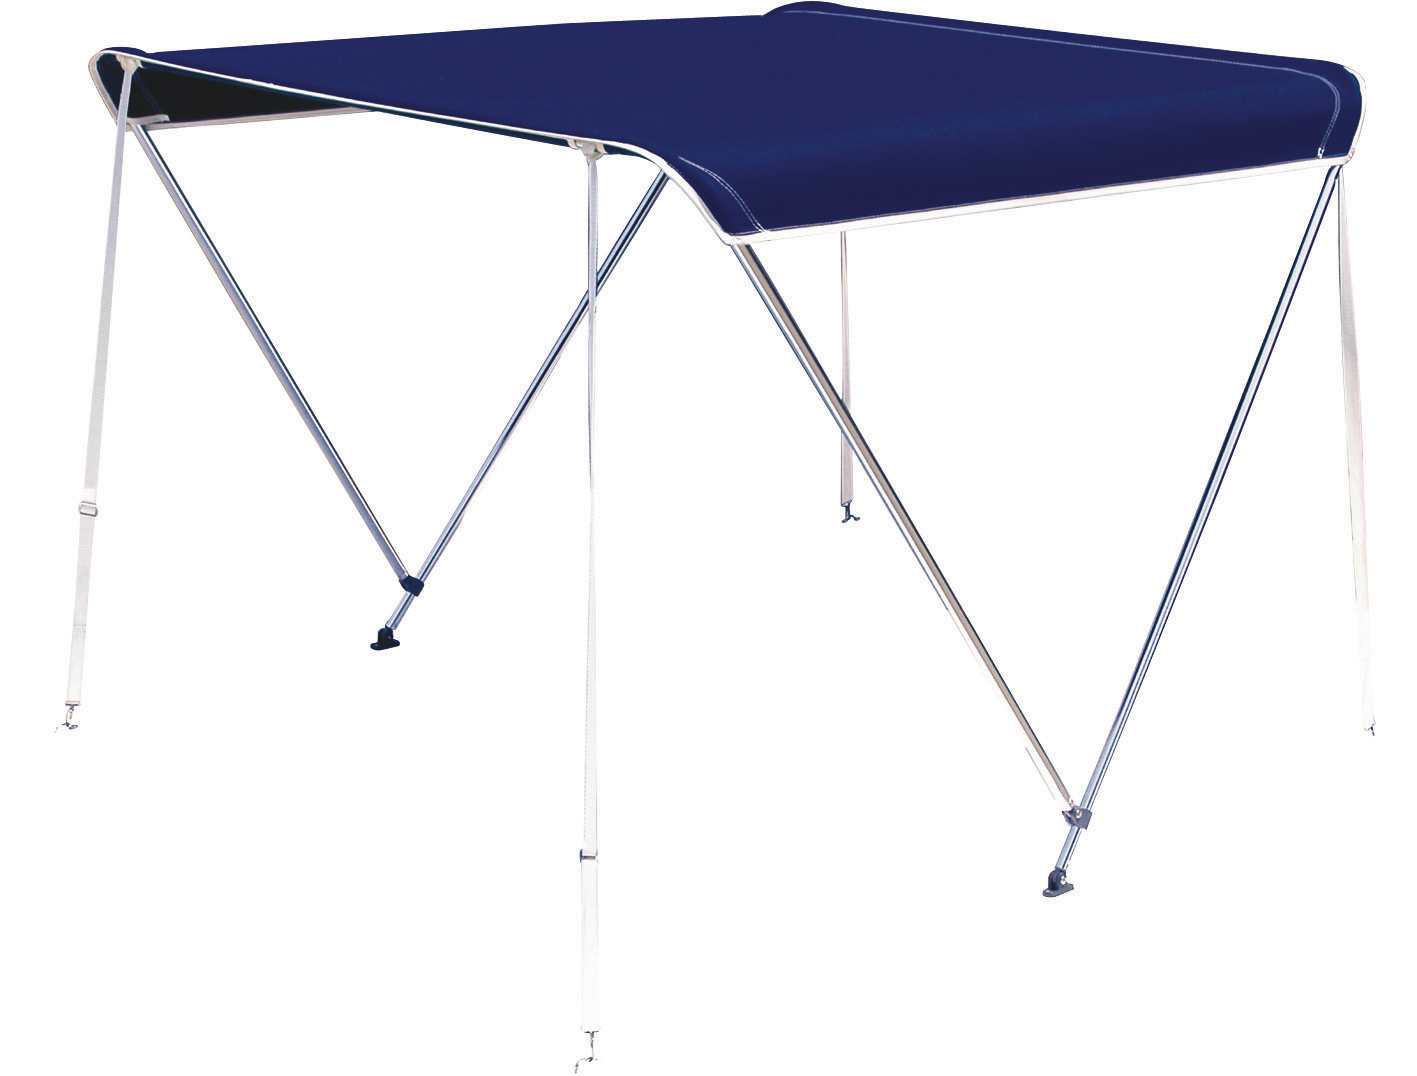 2 Bow Bimini Kit Complete With All Tubes And Fastenings Blue 1.5-1.7m Oceansouth